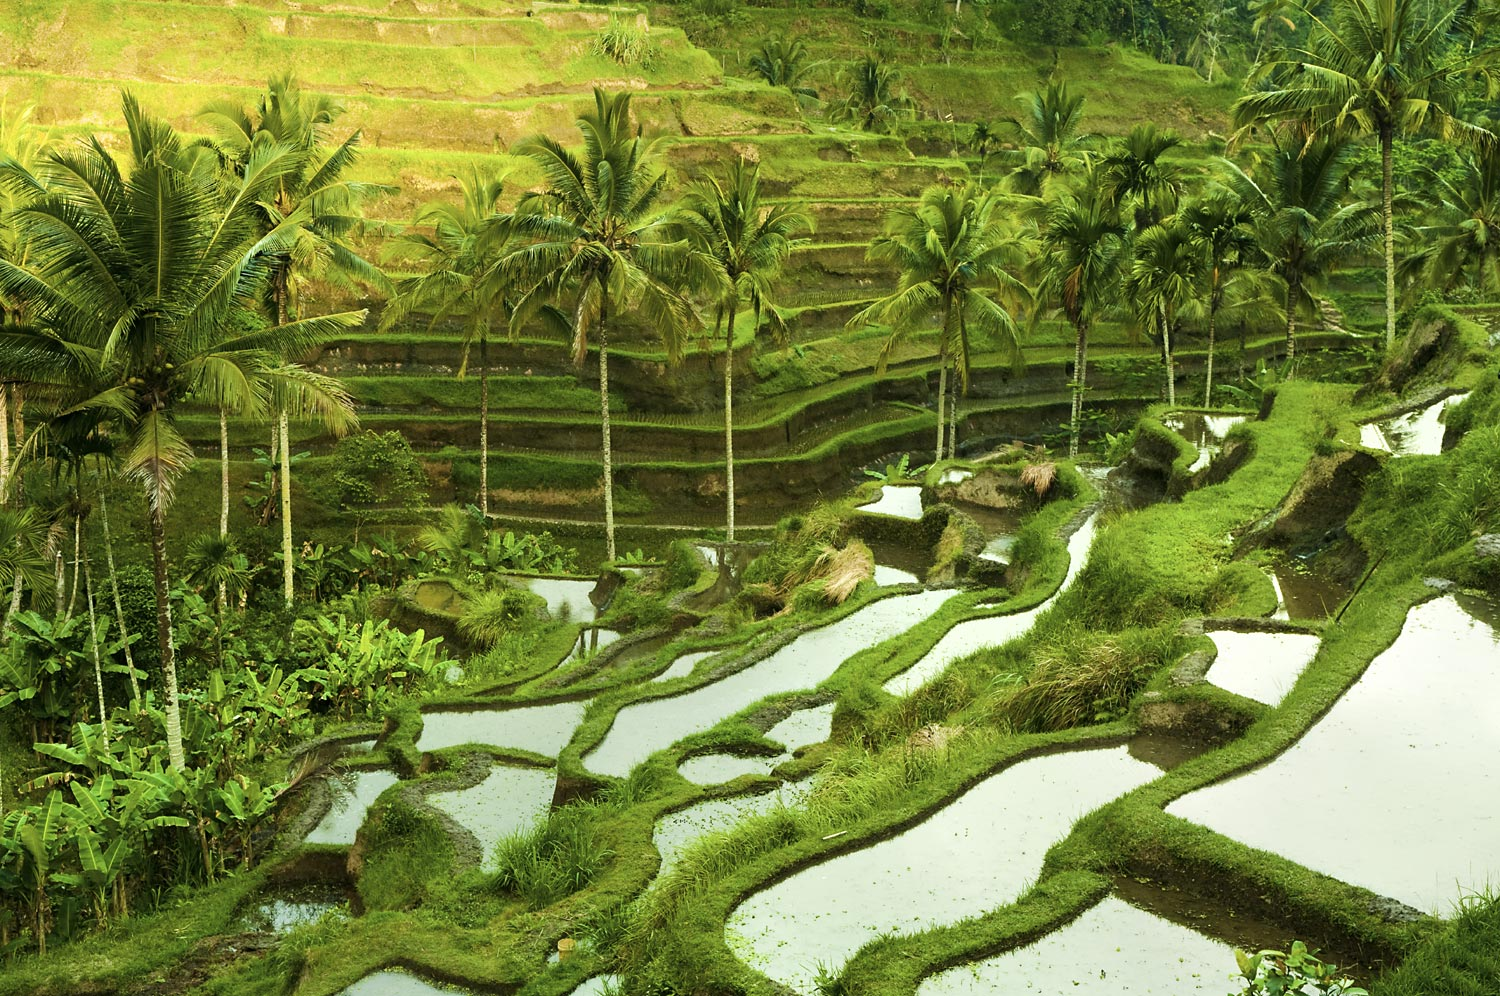 Terrace-rice-fields-2136746.jpg